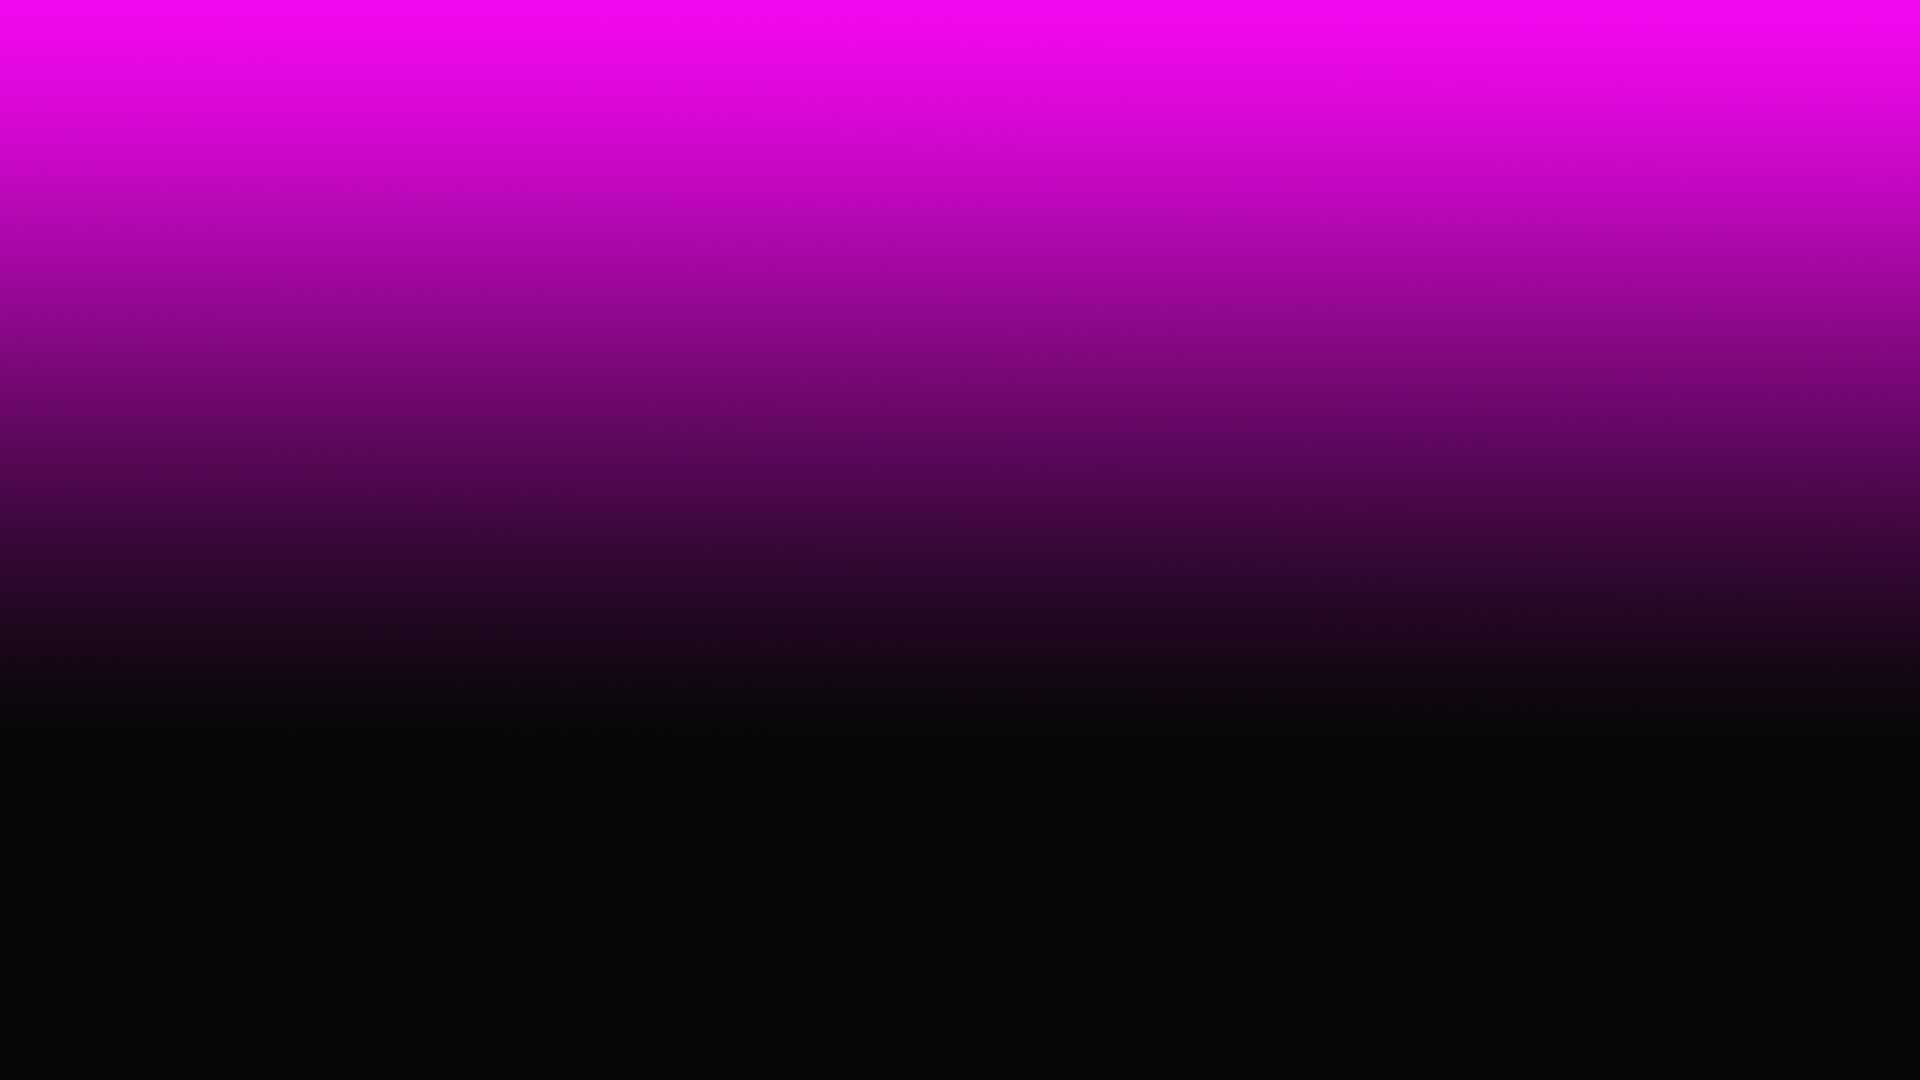 Black To Pink Gradient wallpaper   865927 1920x1080